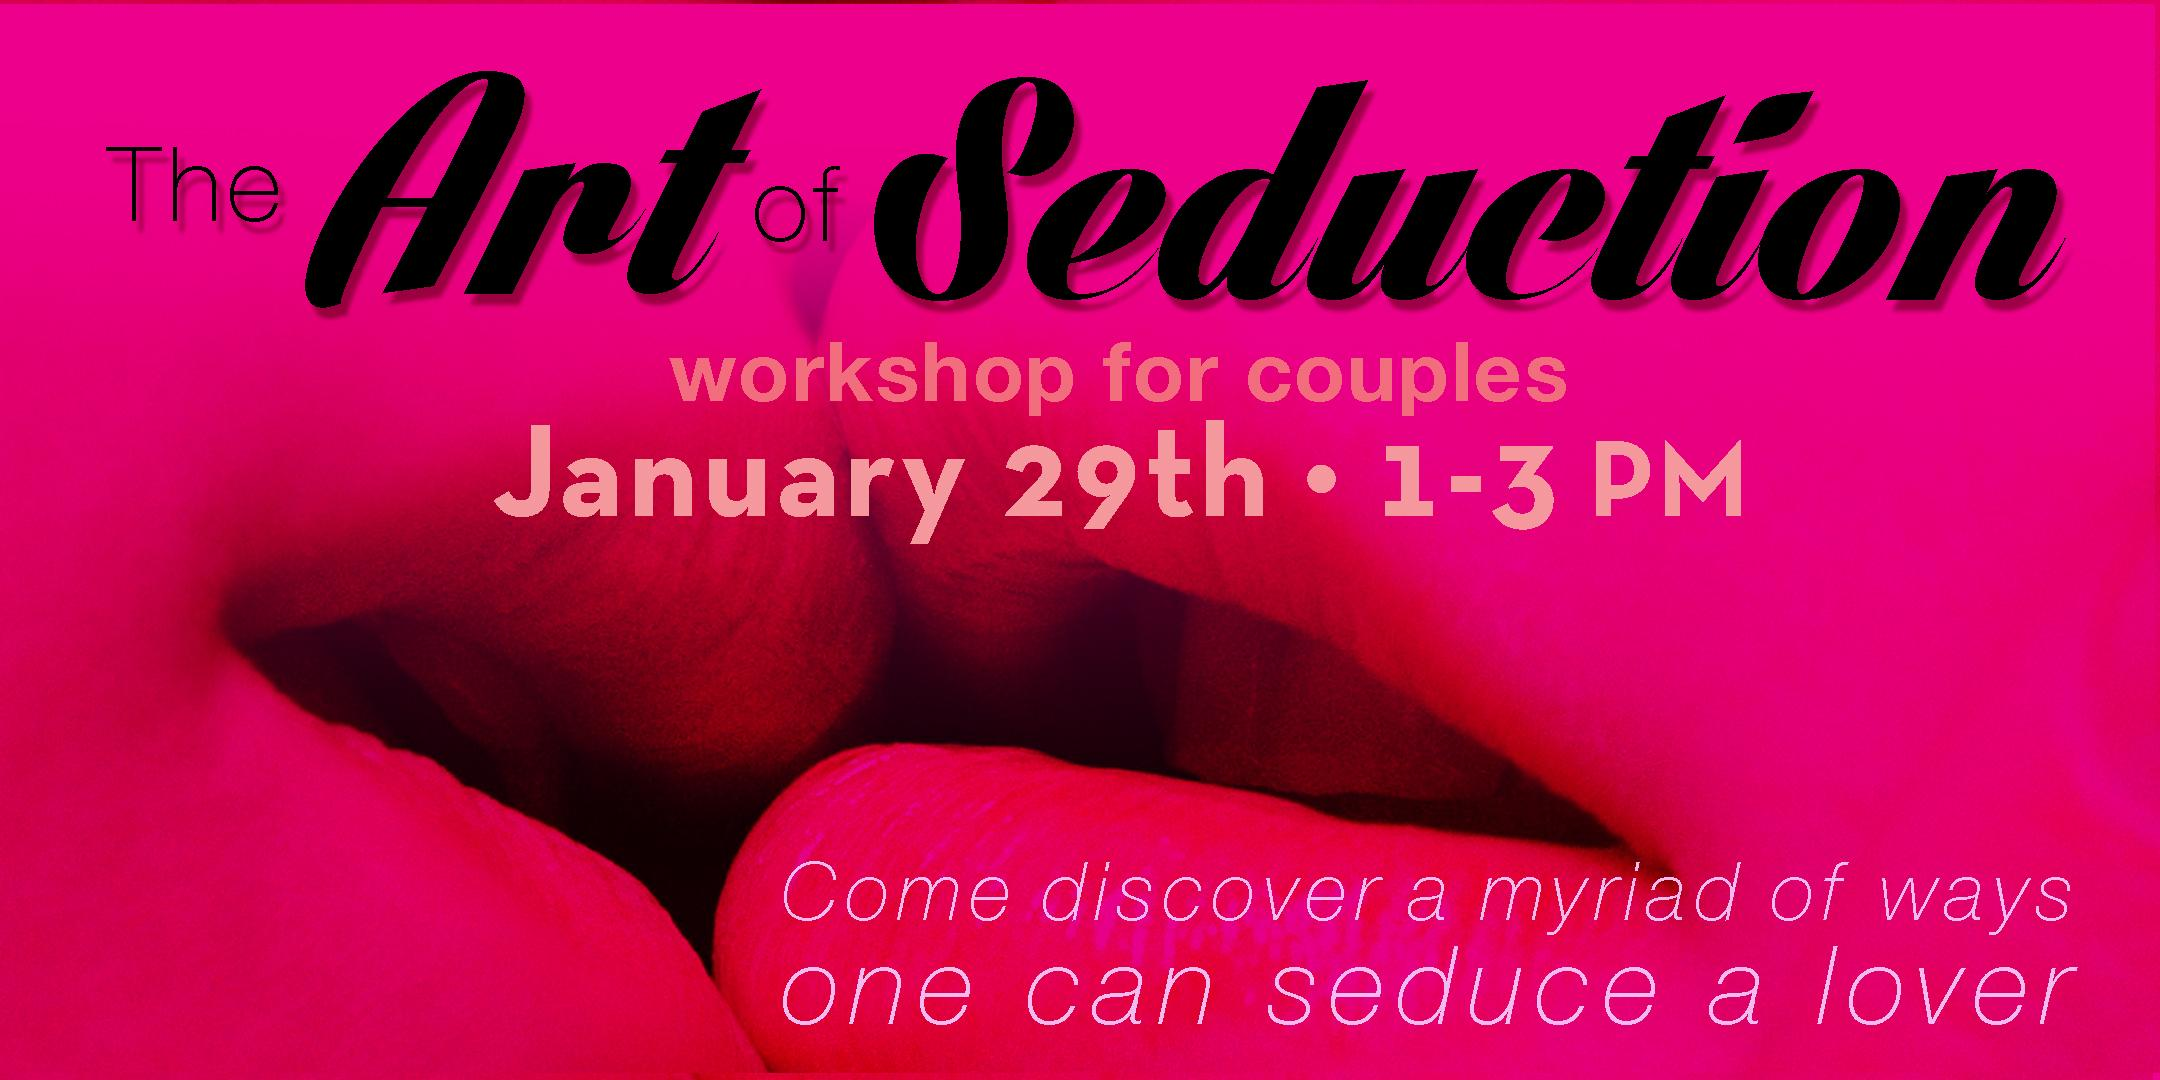 The Art of Seduction Workshop for Couples